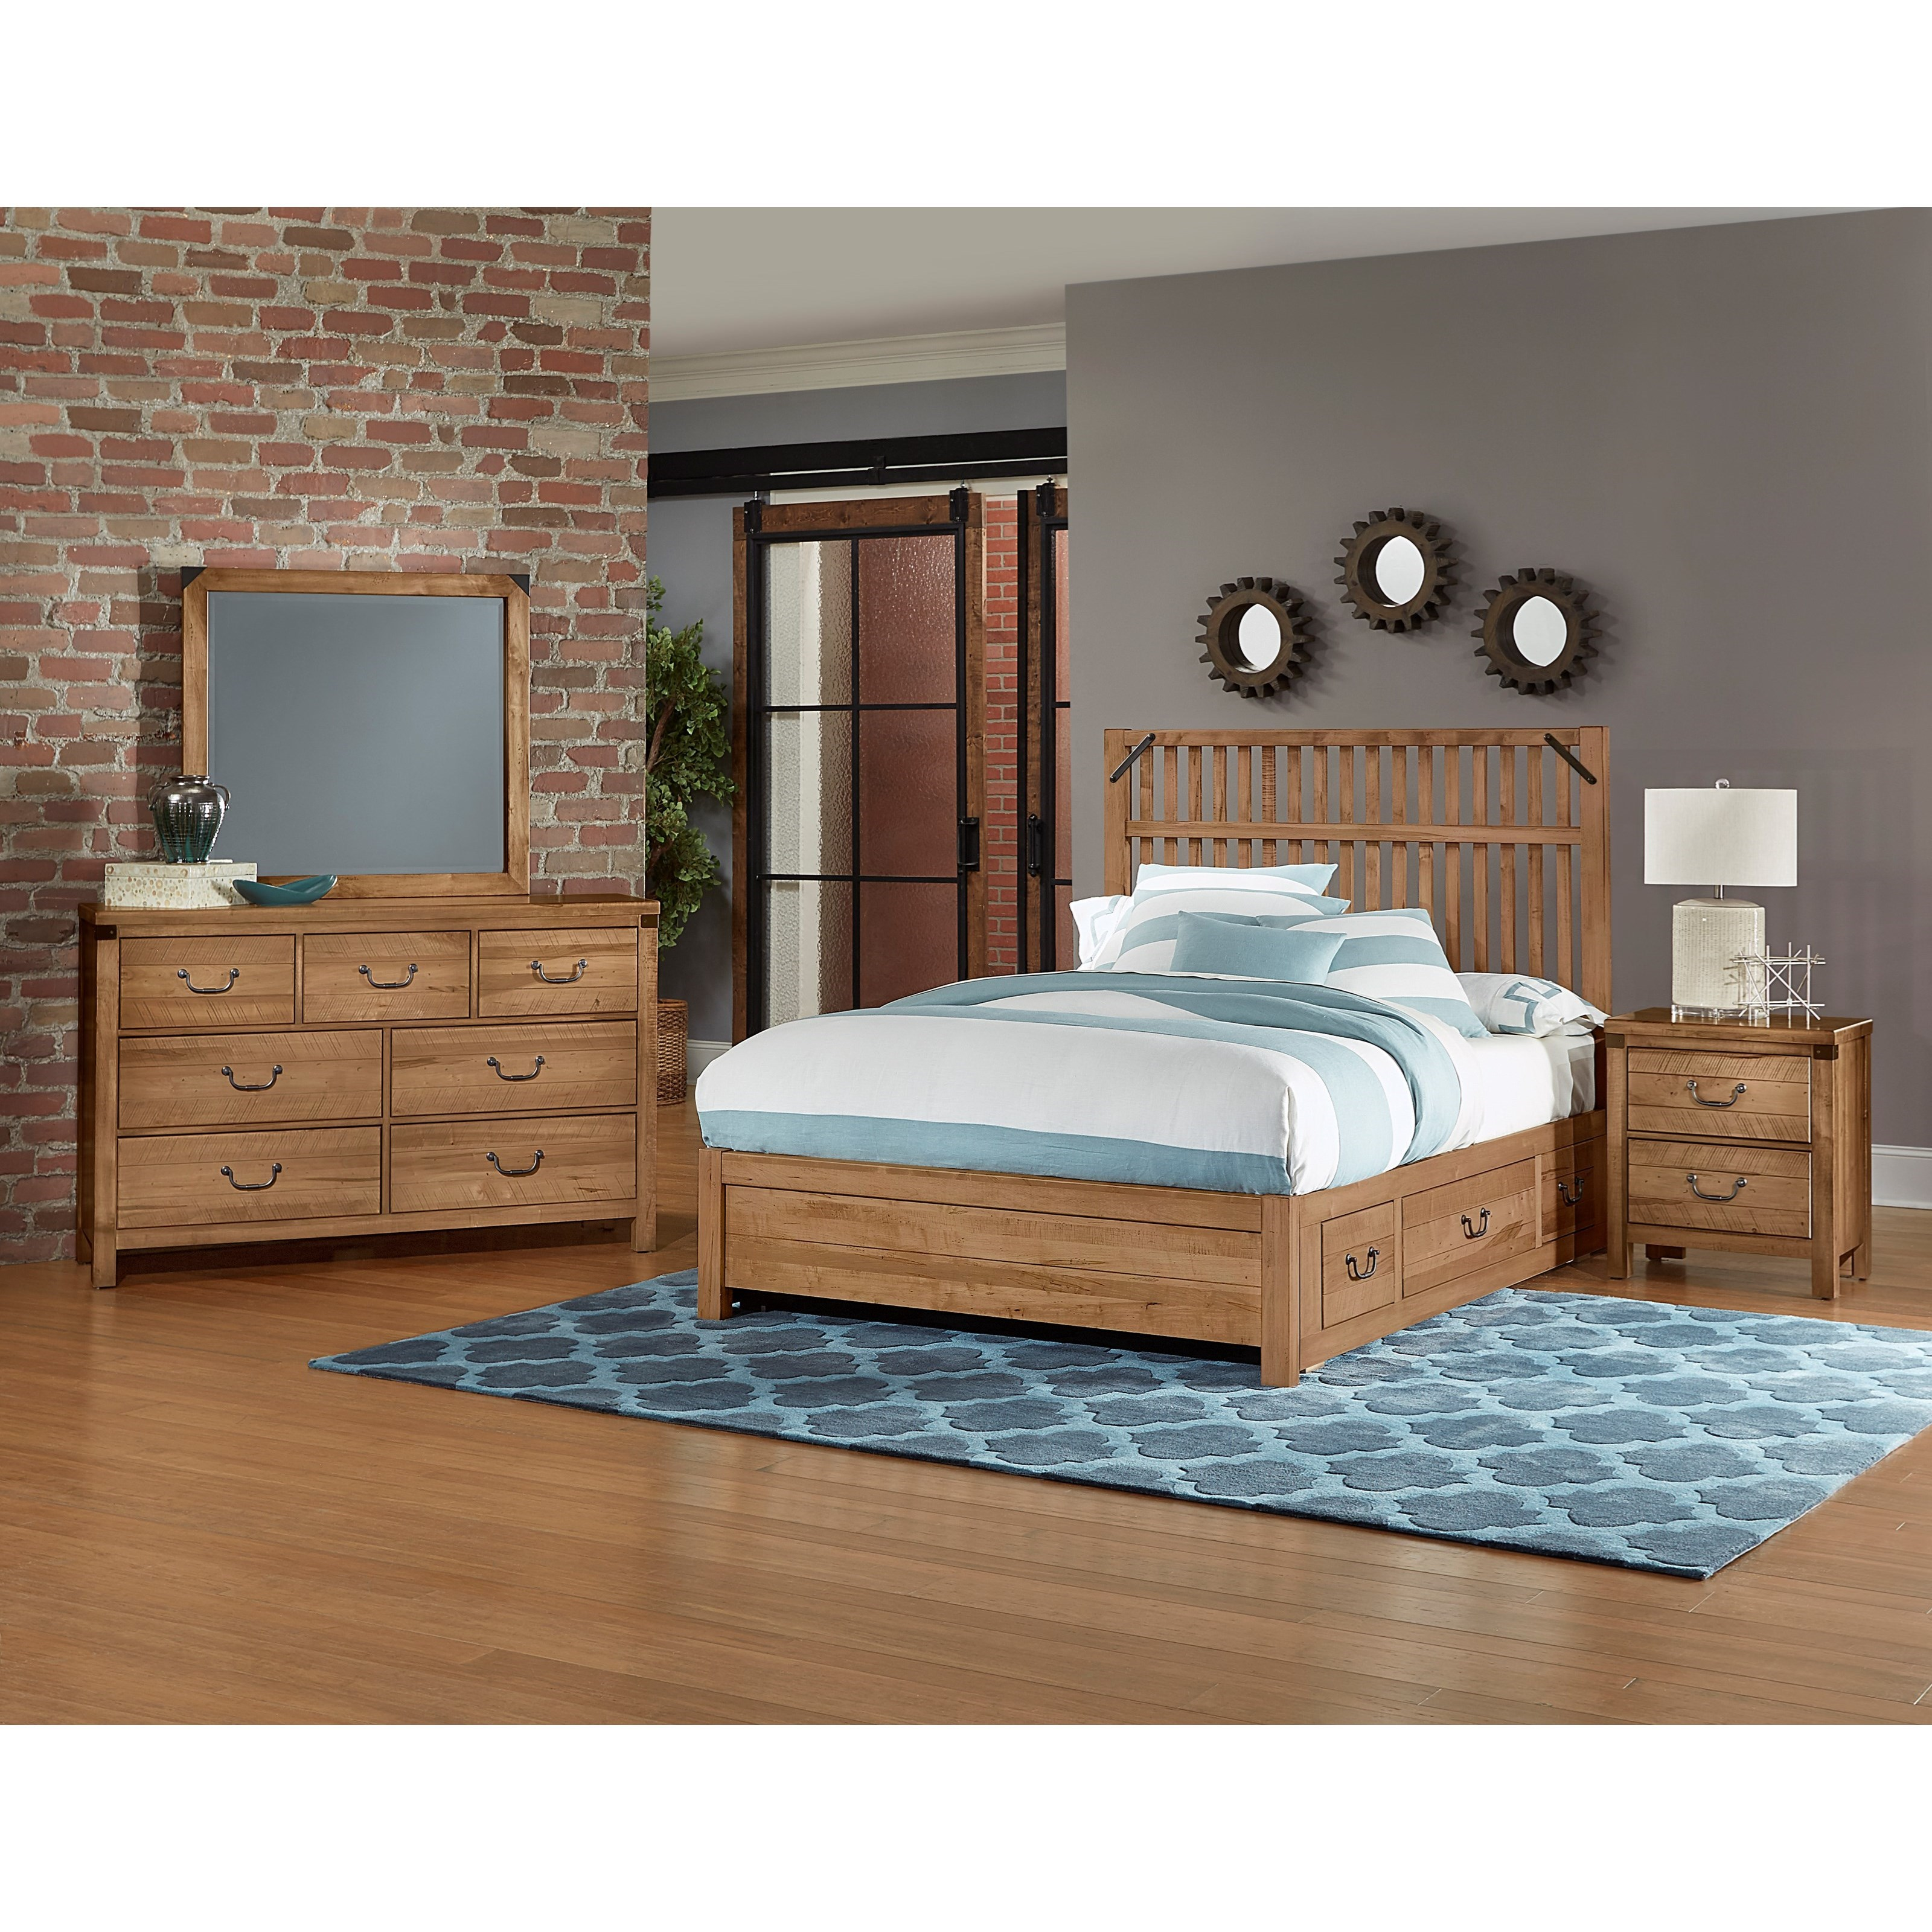 Sedgwick Queen Bedroom Group by Artisan & Post at Dunk & Bright Furniture